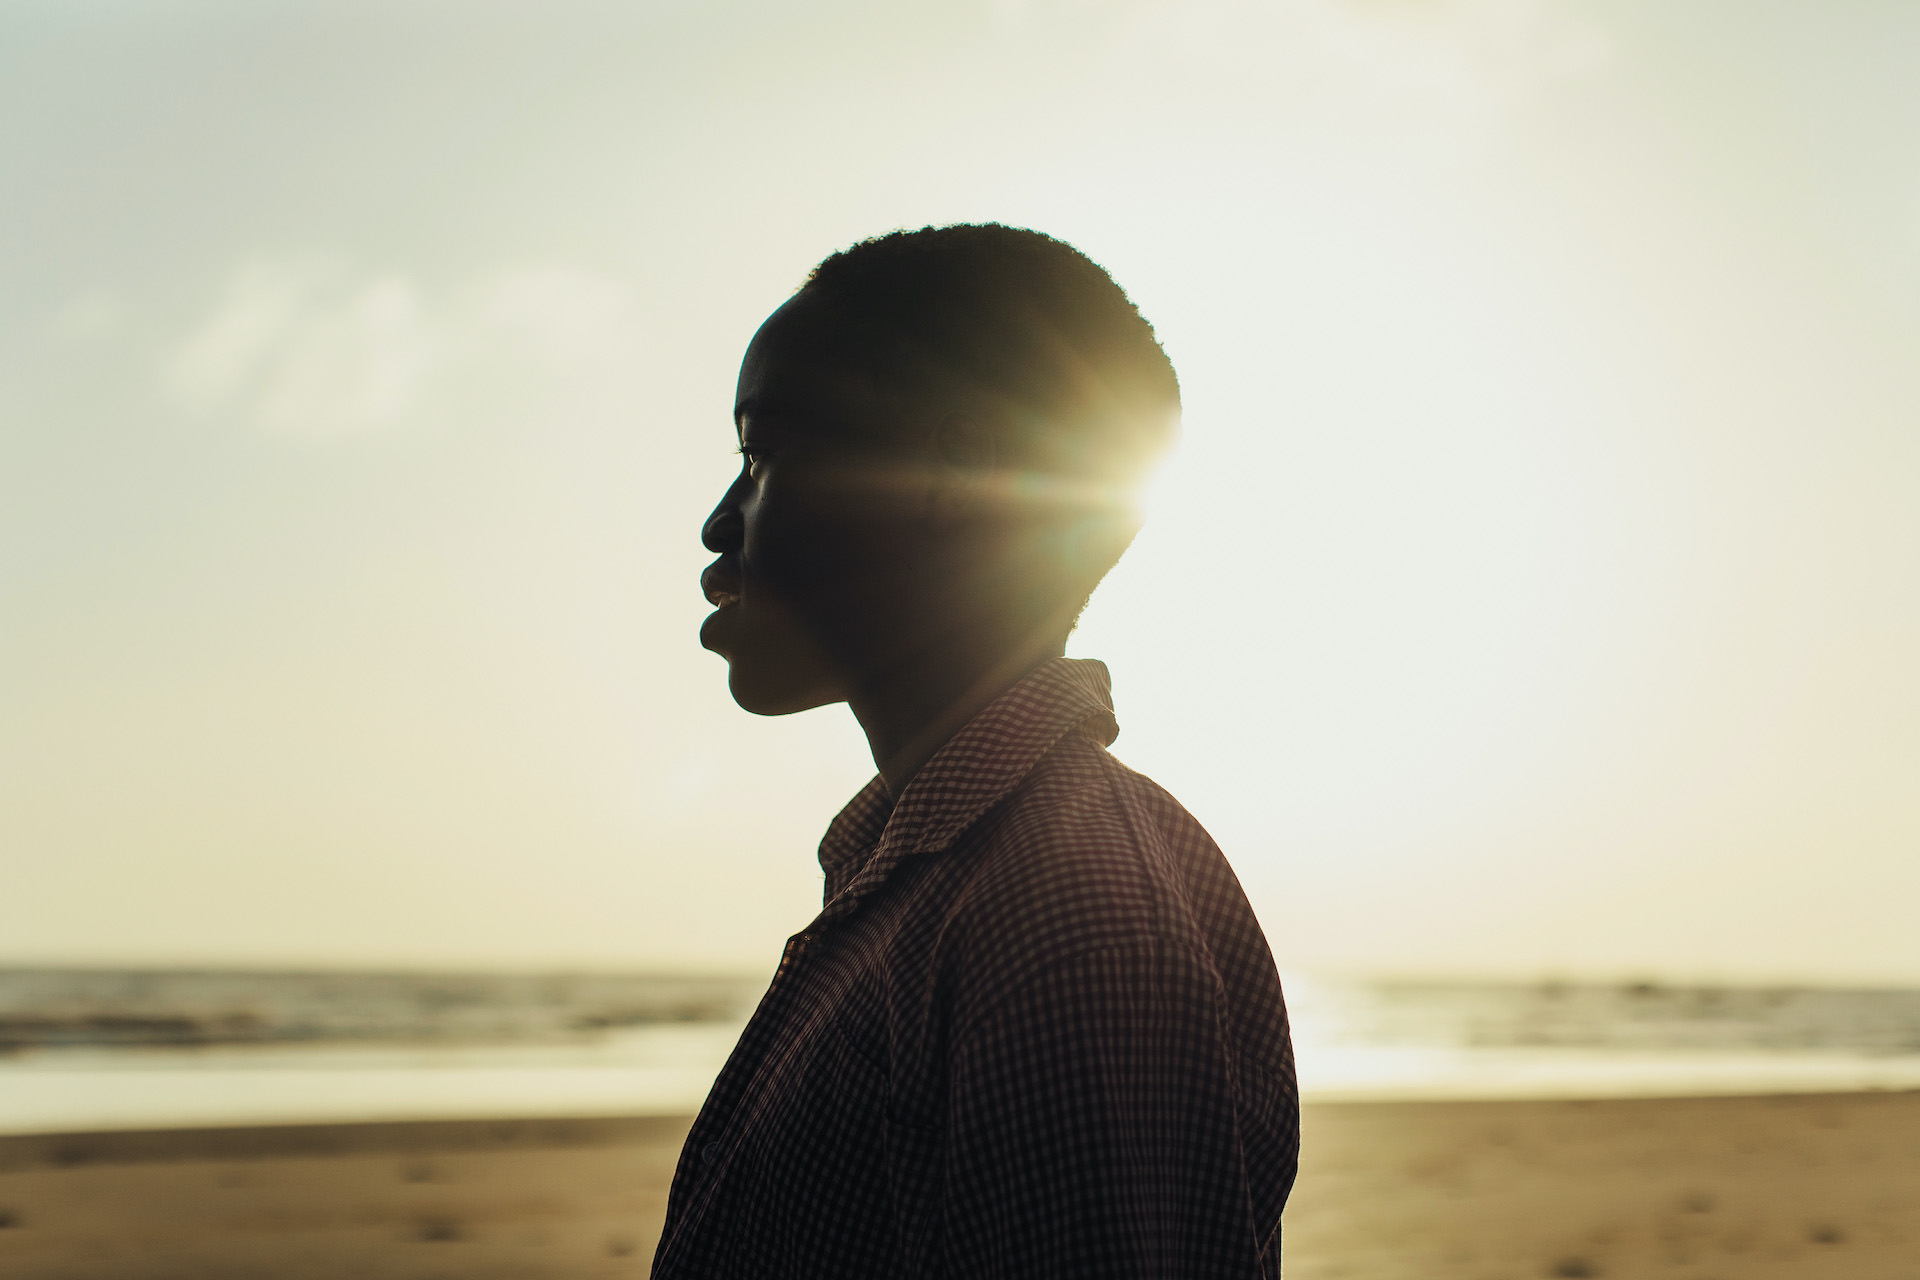 A silhouetted photo of a young Kenyan woman at sunset on a beach.